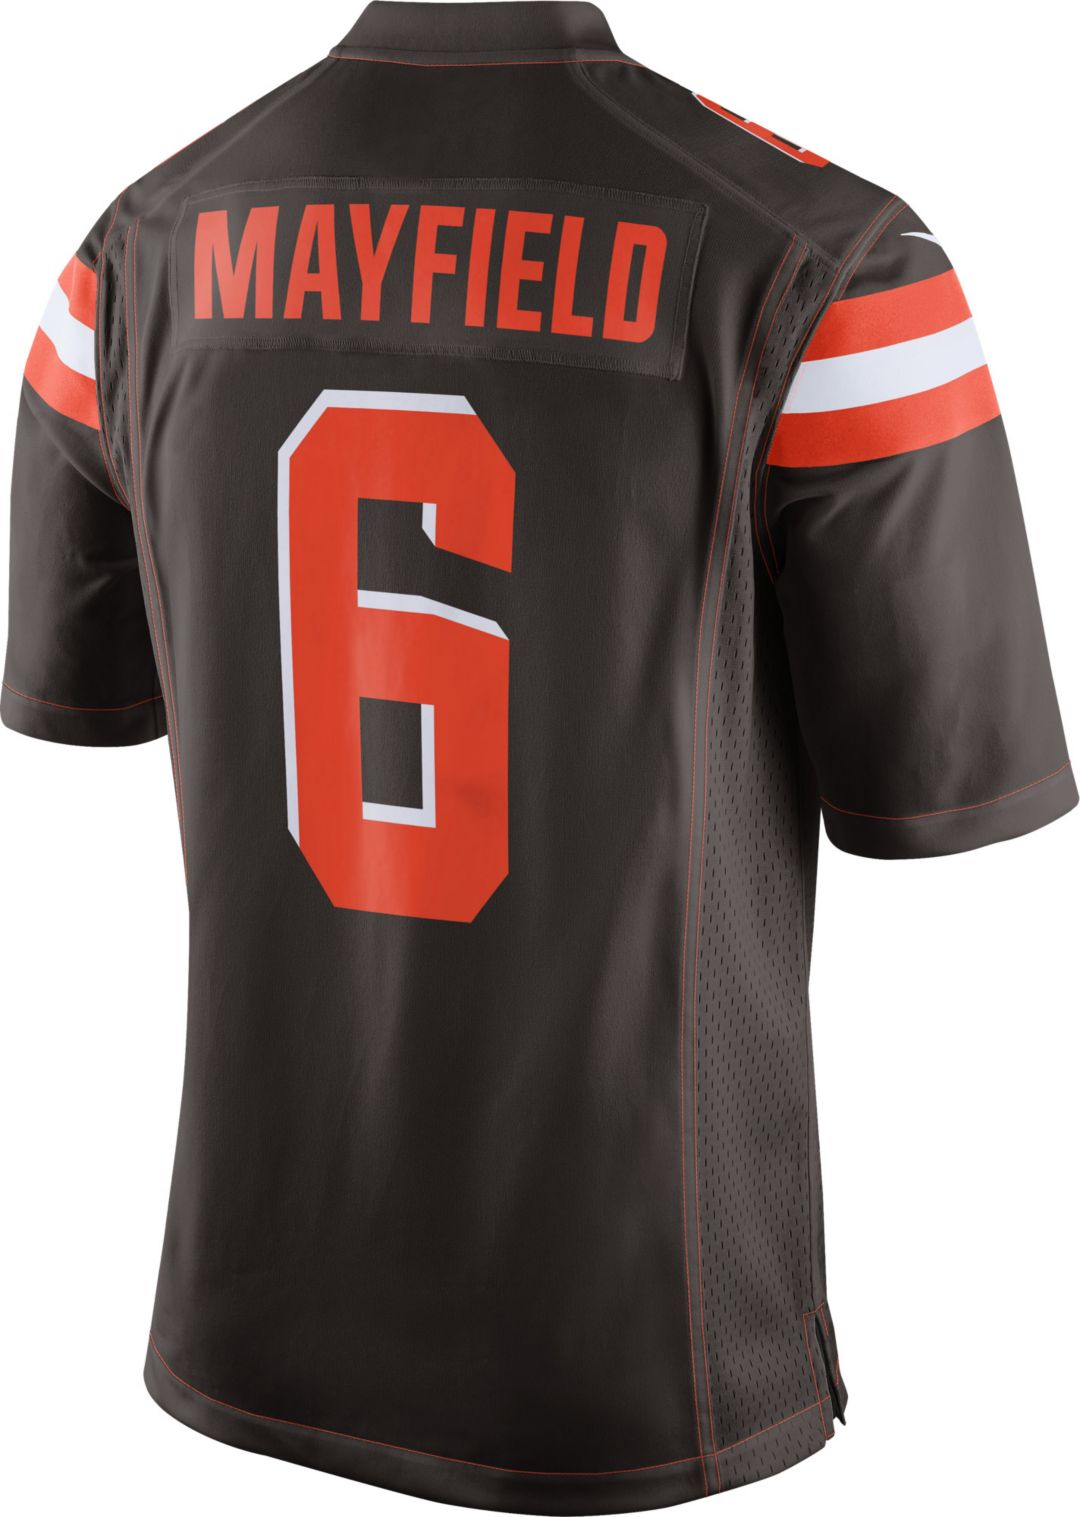 4242af7a Baker Mayfield #6 Nike Men's Cleveland Browns Home Game Jersey.  noImageFound. Previous. 1. 2. 3